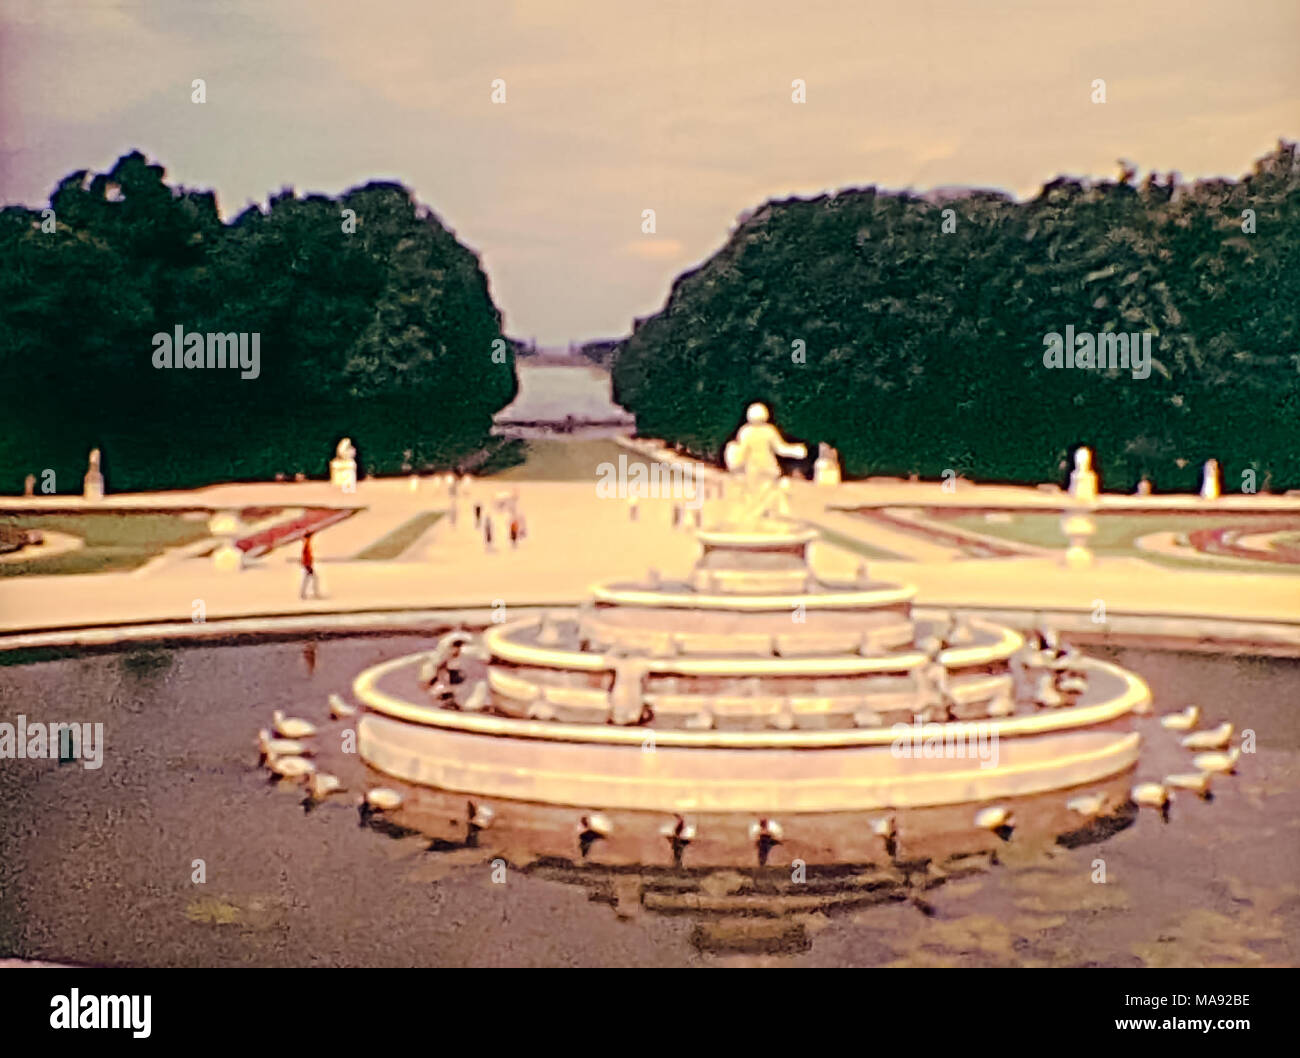 Fountain in the gardens of the Parisian Palace of Versailles with tourists in 1976. Historic archival footage in Paris city of France in 1970s. - Stock Image